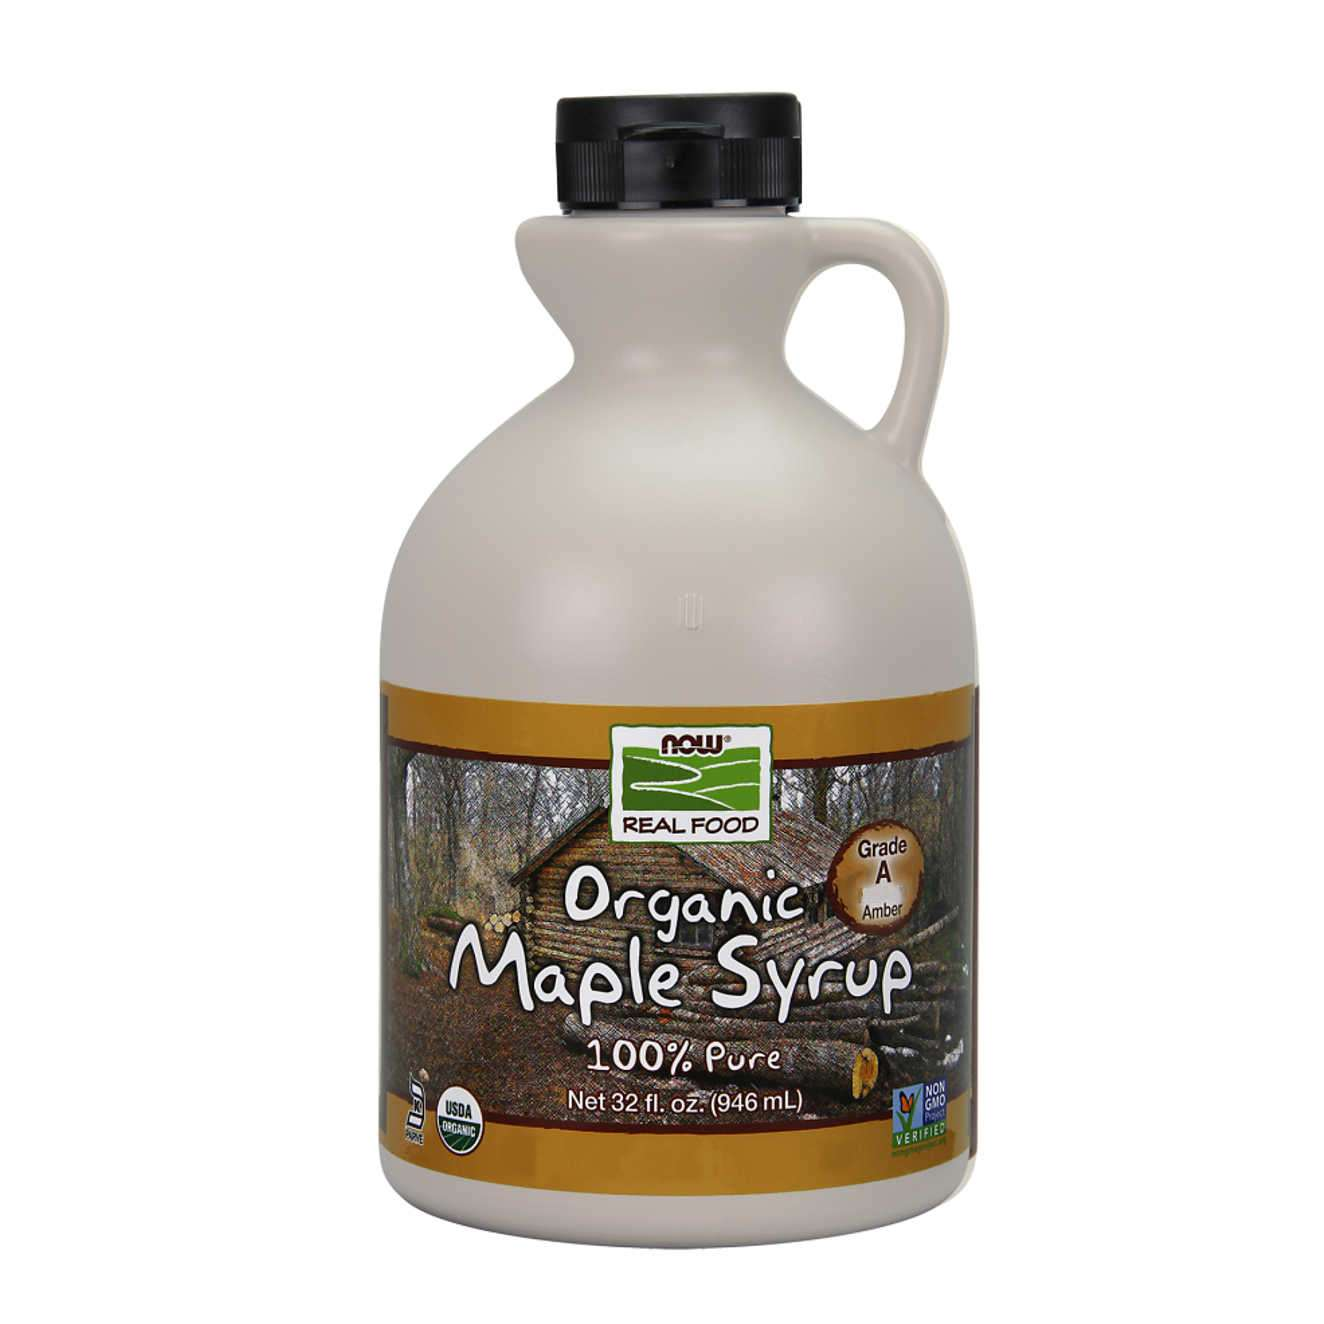 ORGANIC MAPLE SYRUP GRADE A AMBER COLOR - 946ml